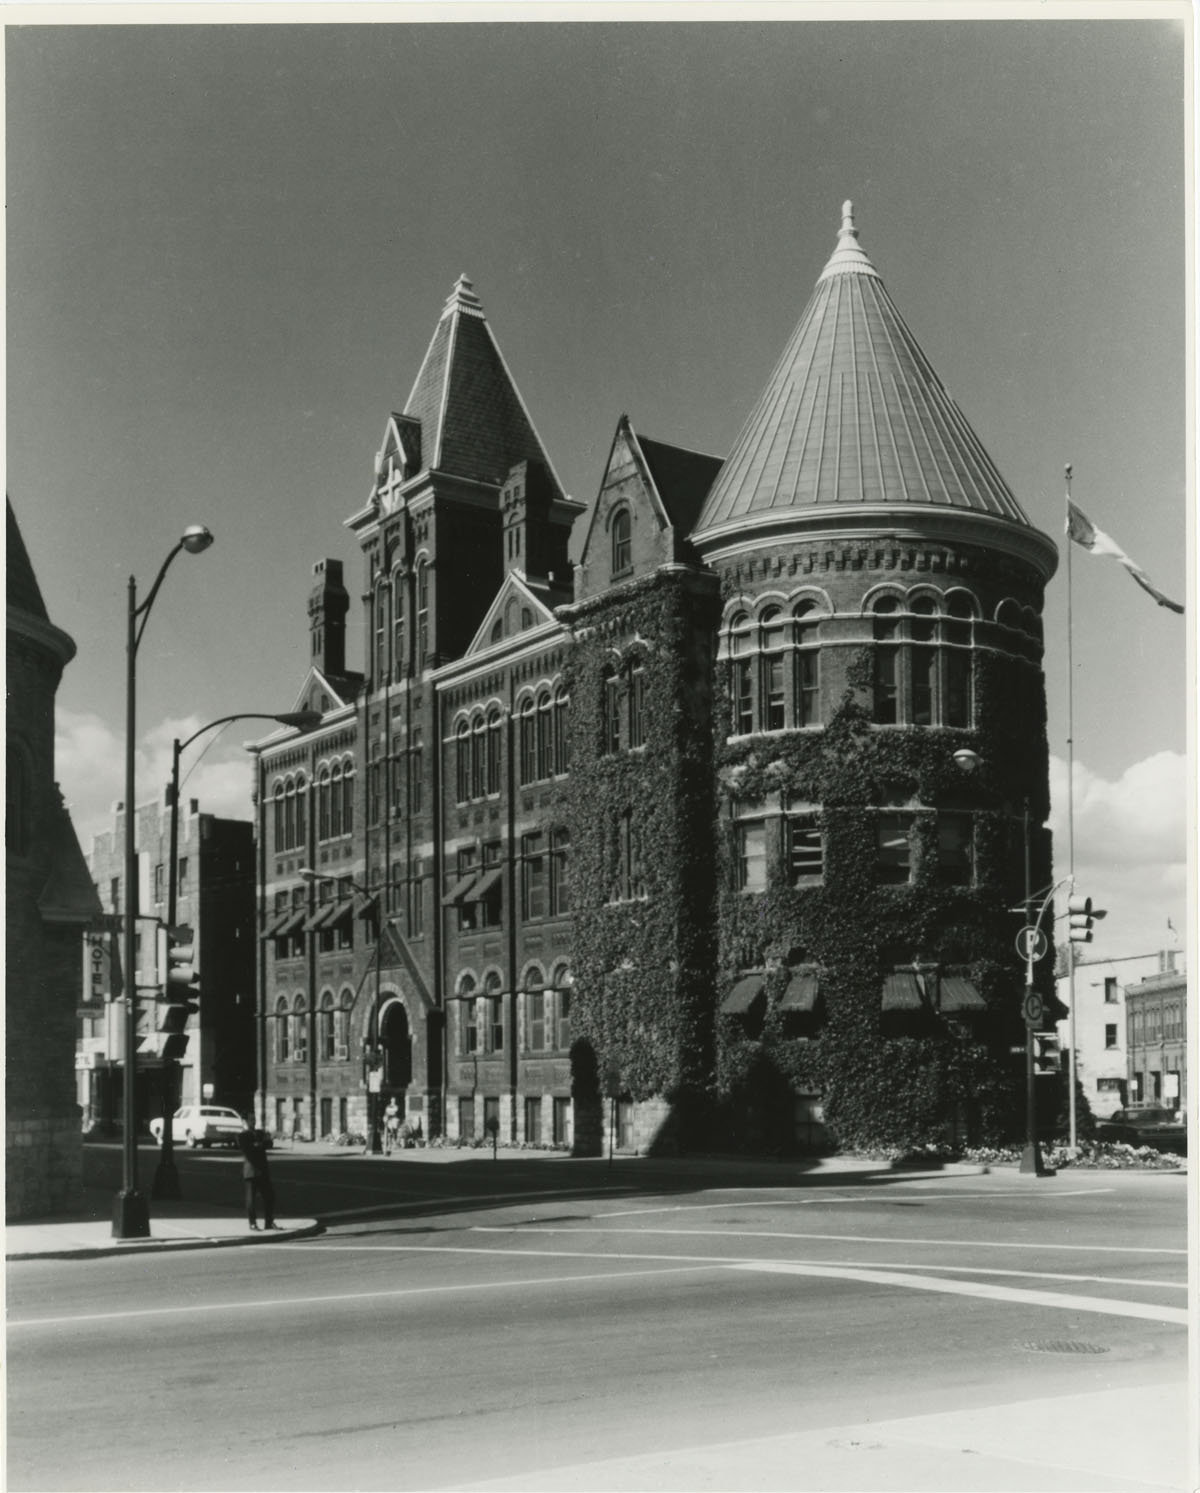 Harrison Hall in black and white.